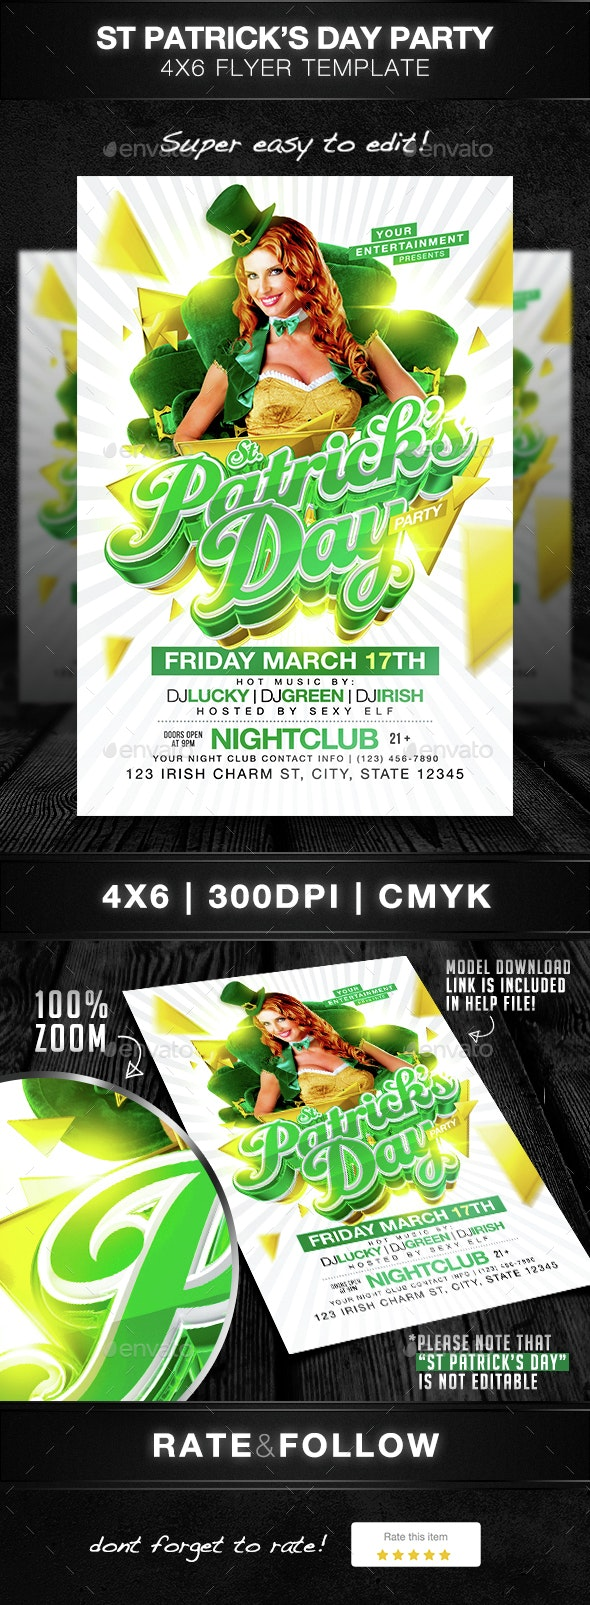 St Patricks Day Party Flyer Template - Holidays Events